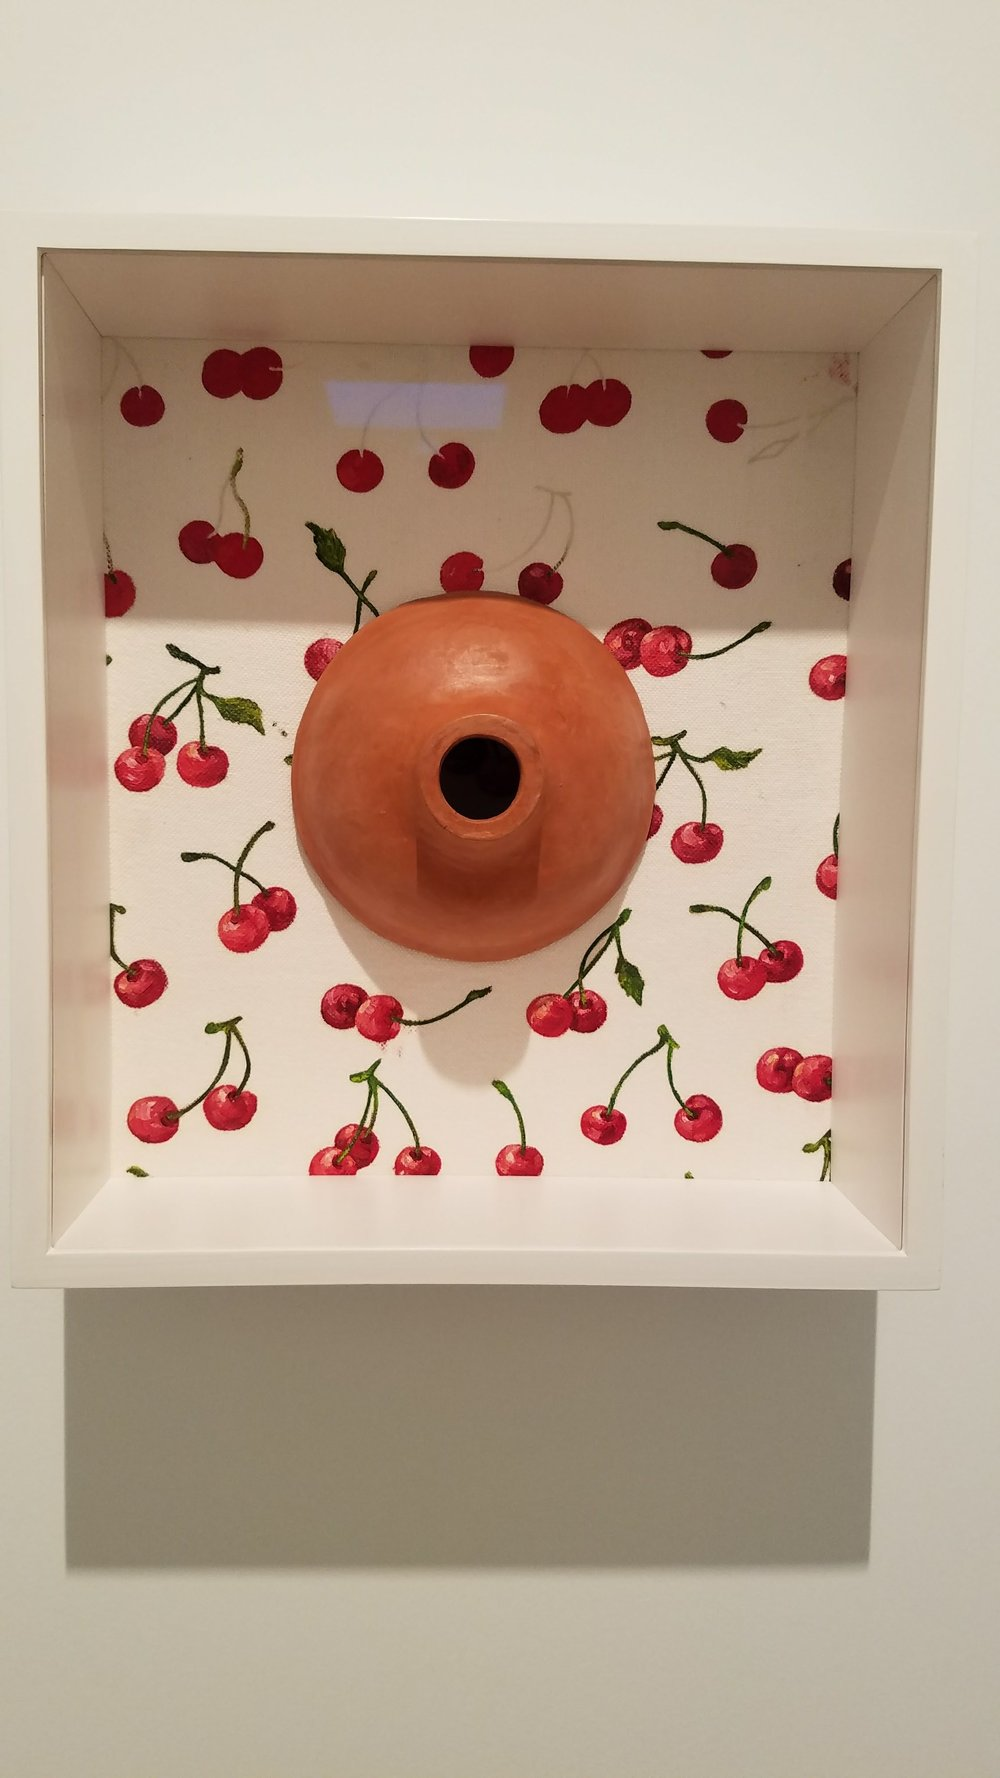 7. Robert Gober, PlungerCherries, 2000-2017.jpg